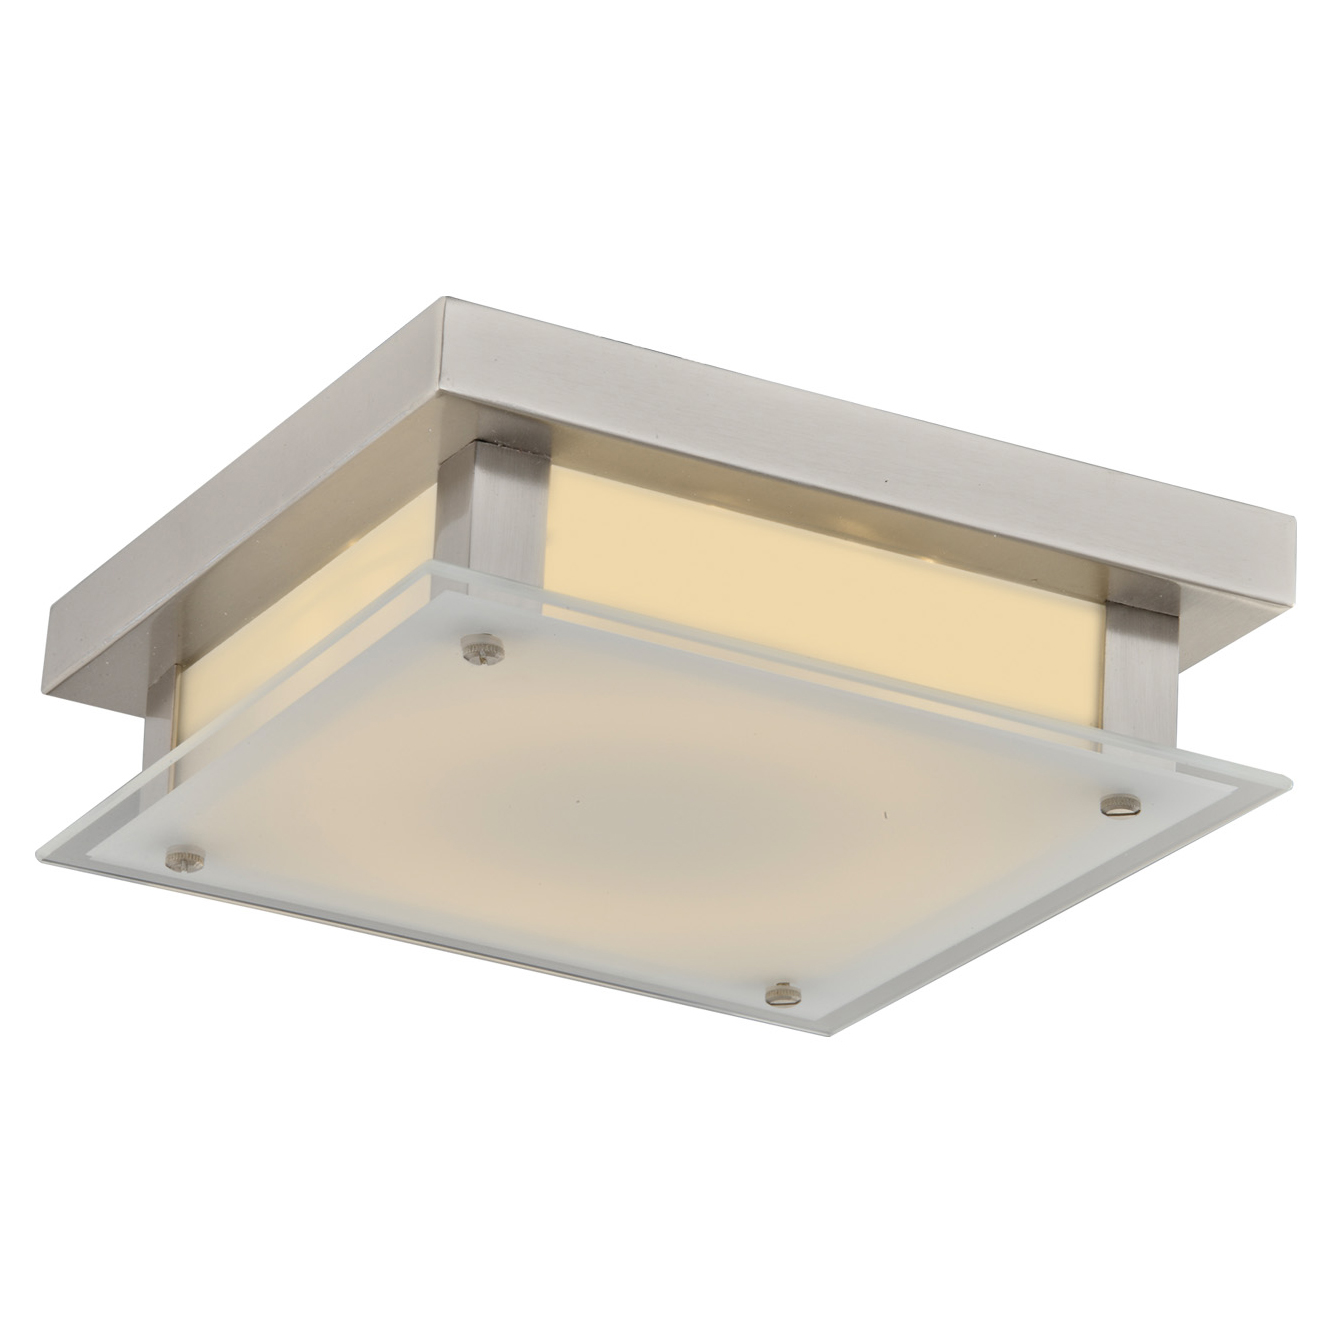 Cermack St Square Diffuser Ceiling Light Fixture By Avenue Lighting Hf1103 Bn